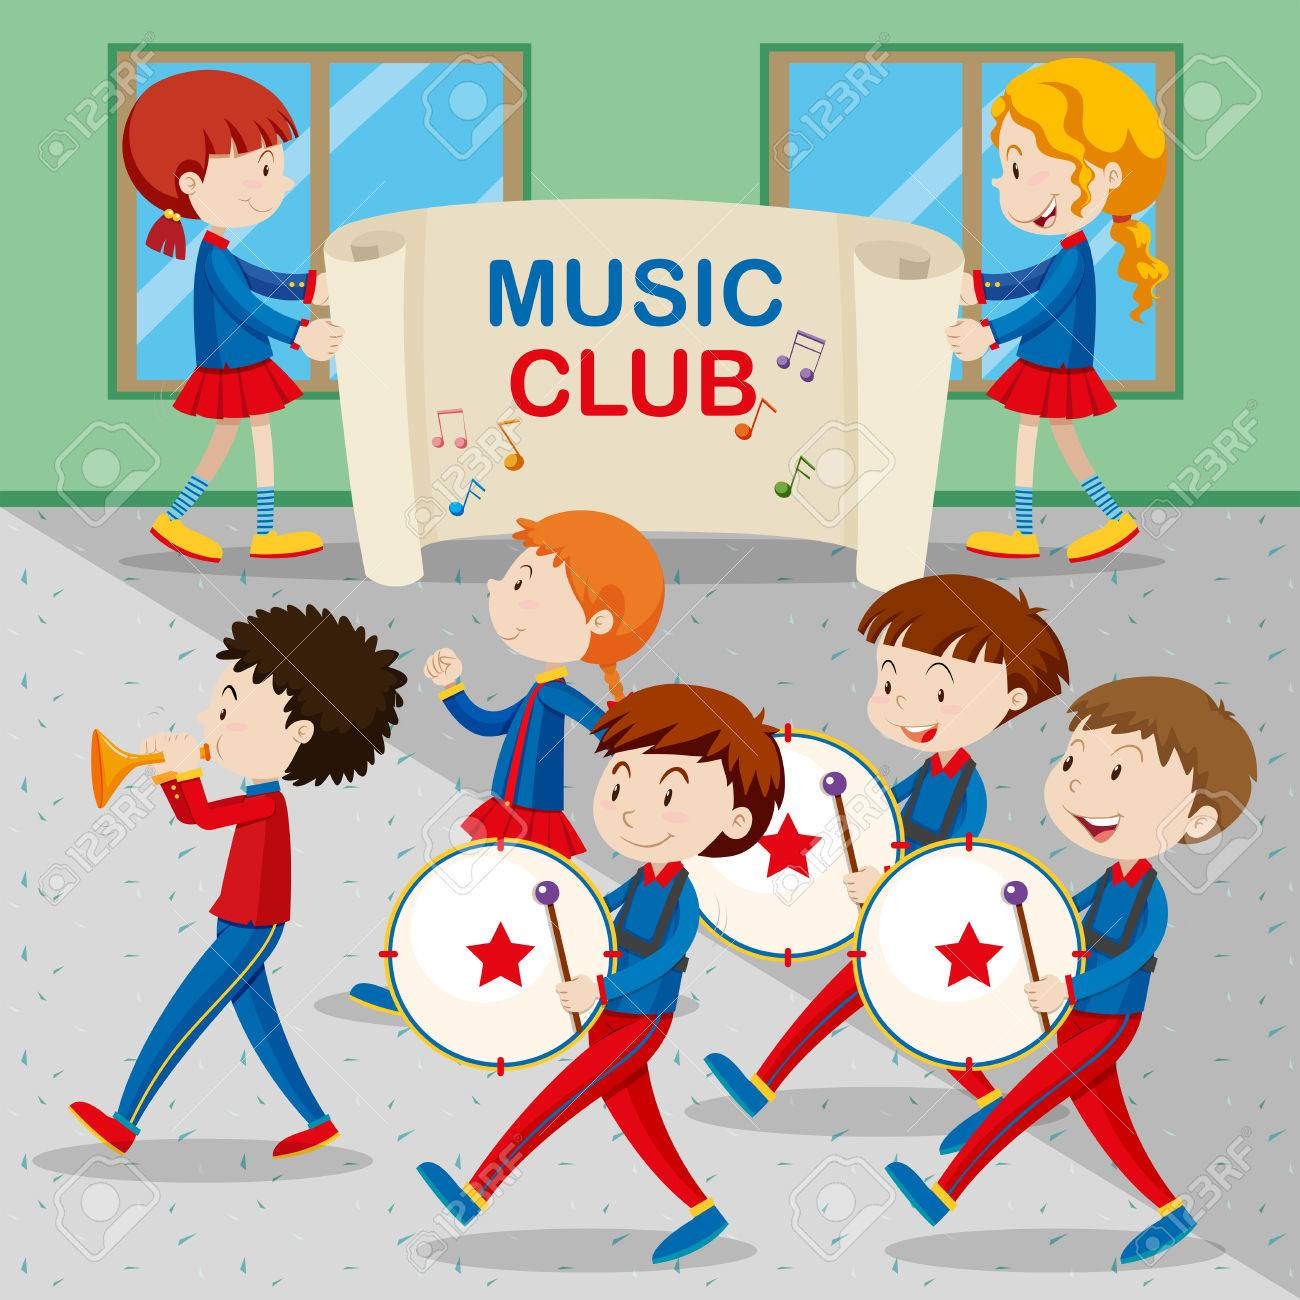 Children in the band marching illustration.